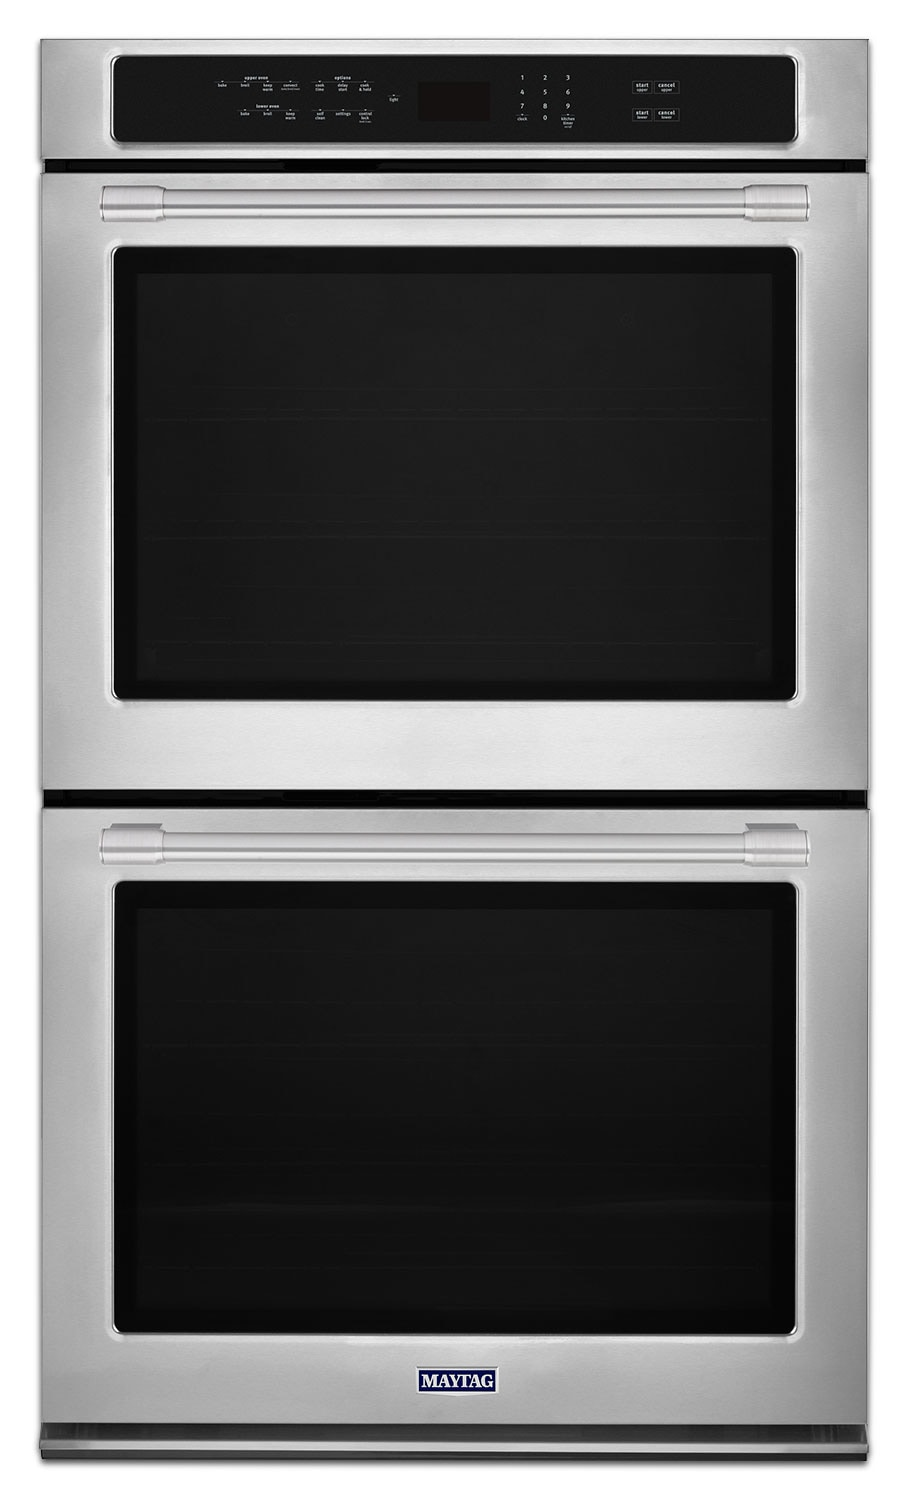 Cooking Products - Maytag Stainless Steel Electric Double Wall Oven (10.0 Cu. Ft.) - MEW9630FZ